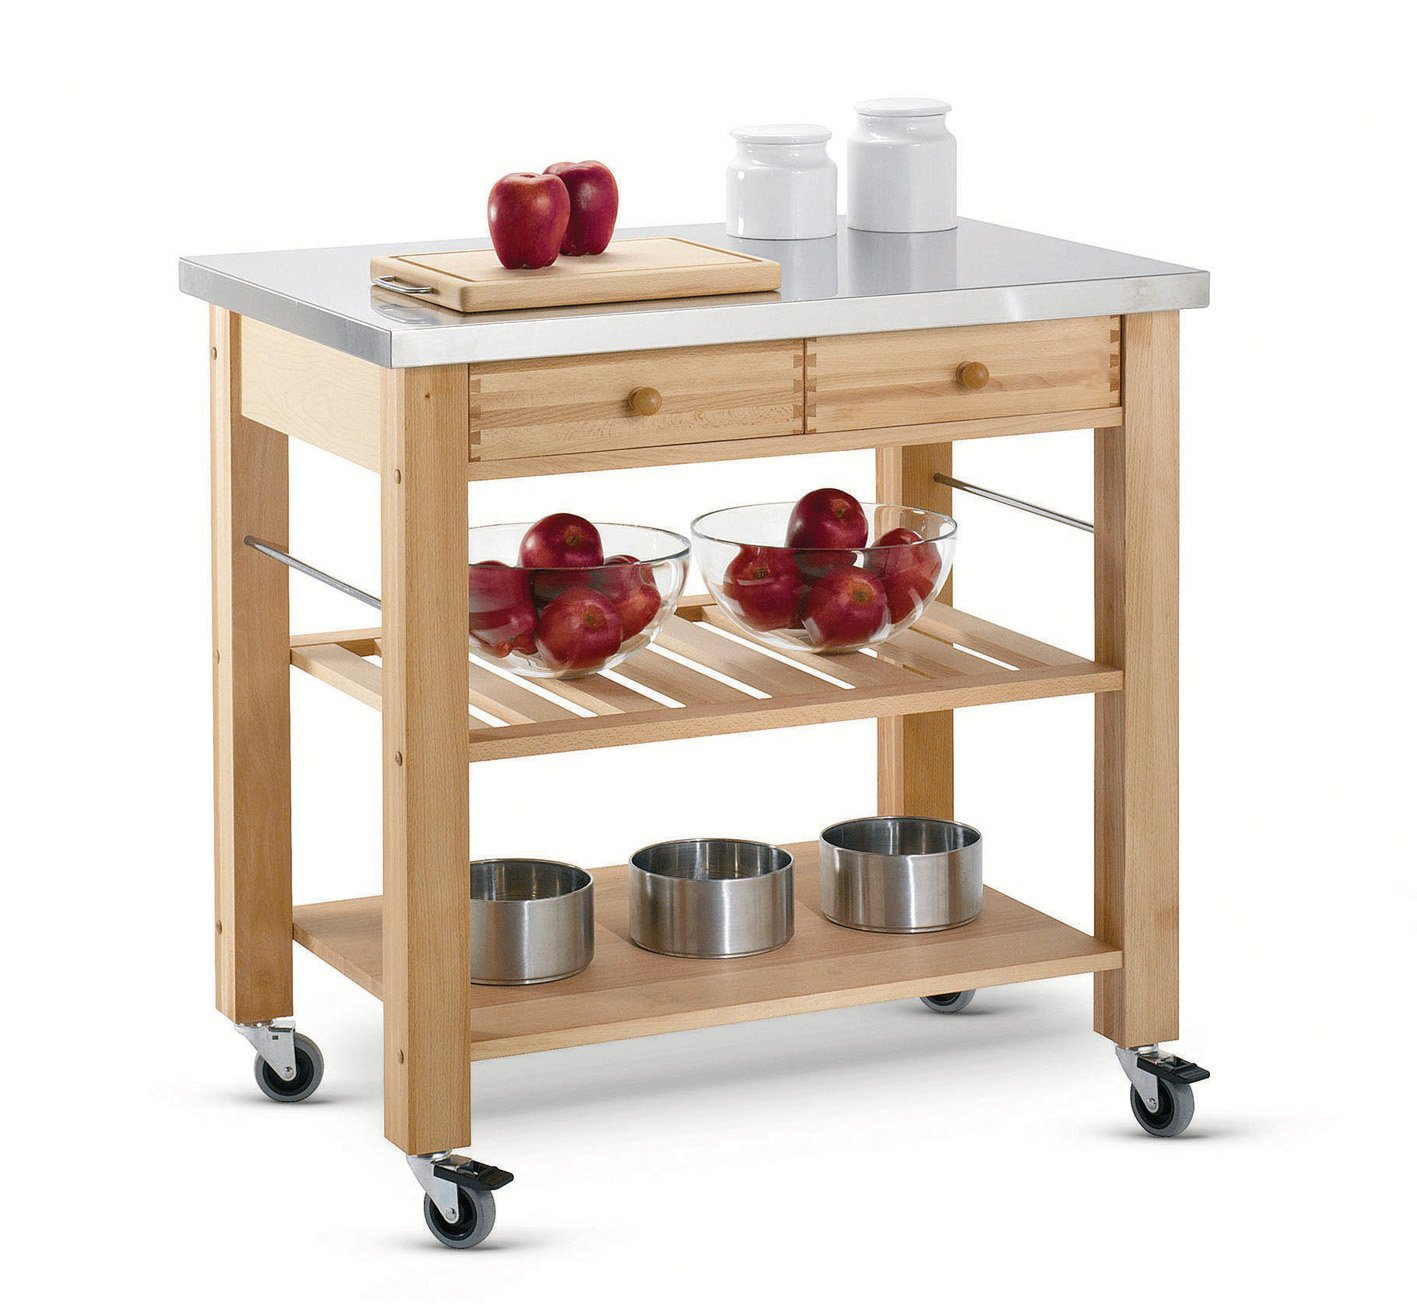 Hungerford Trolleys The Lambourn Two Drawer Stainless